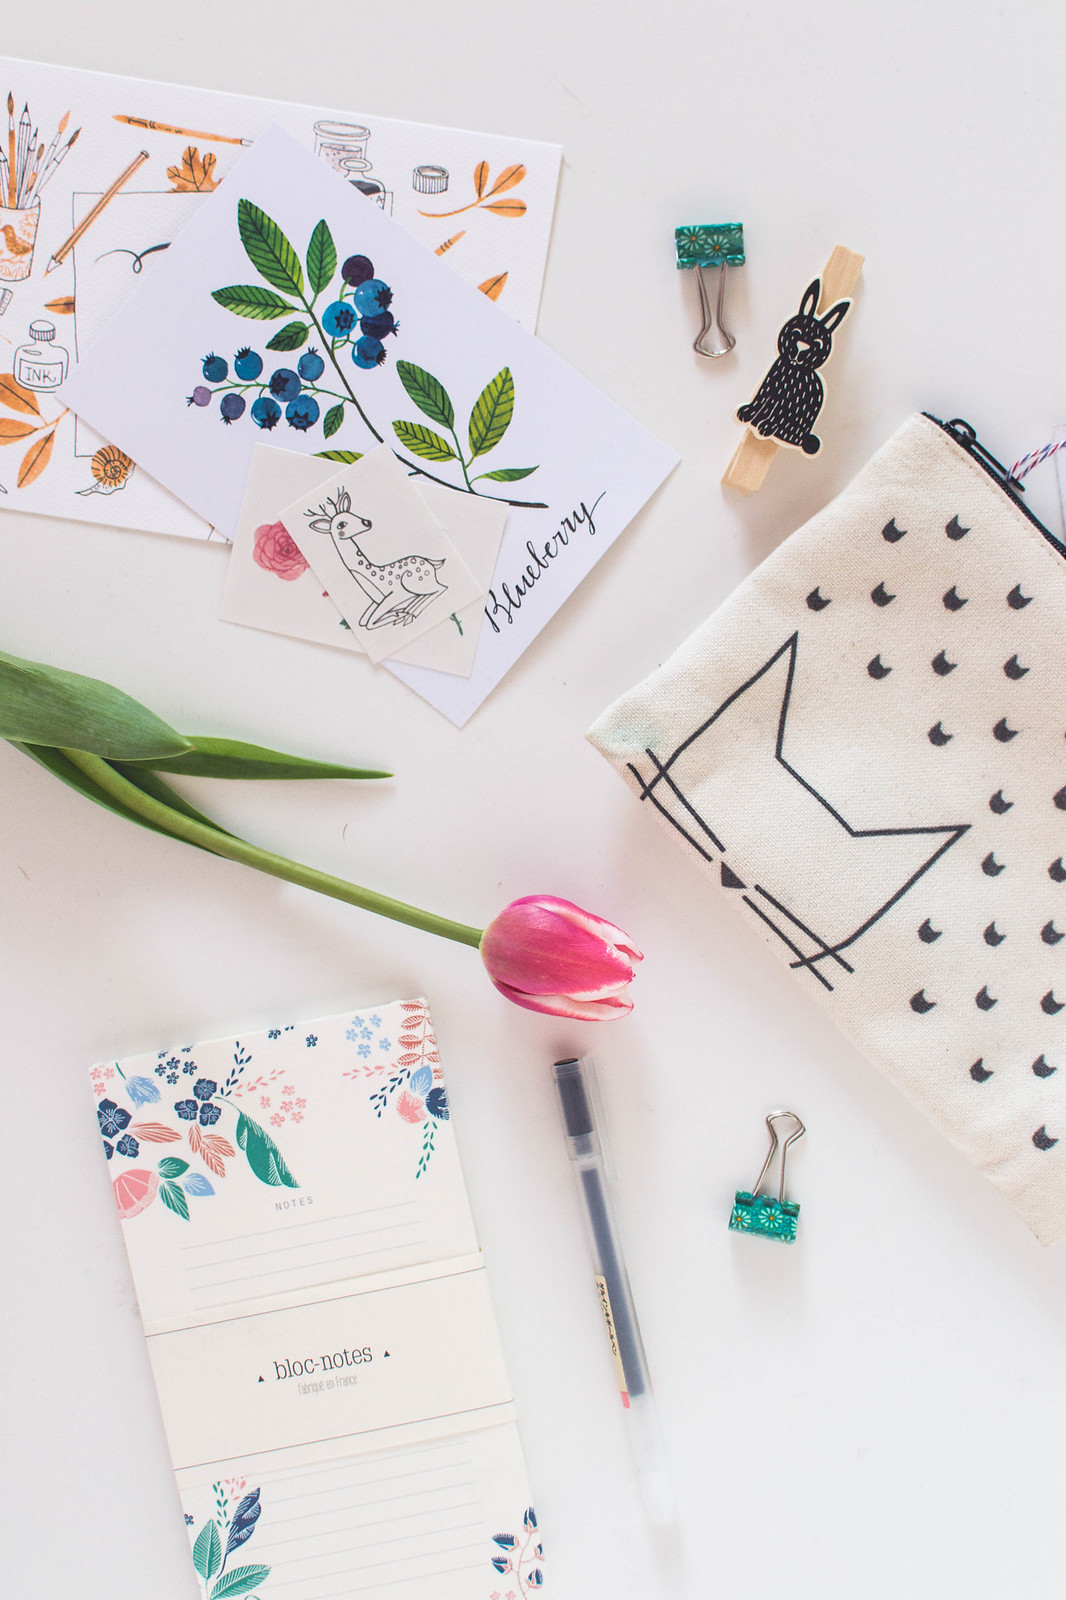 Etsy Favourite Finds #2